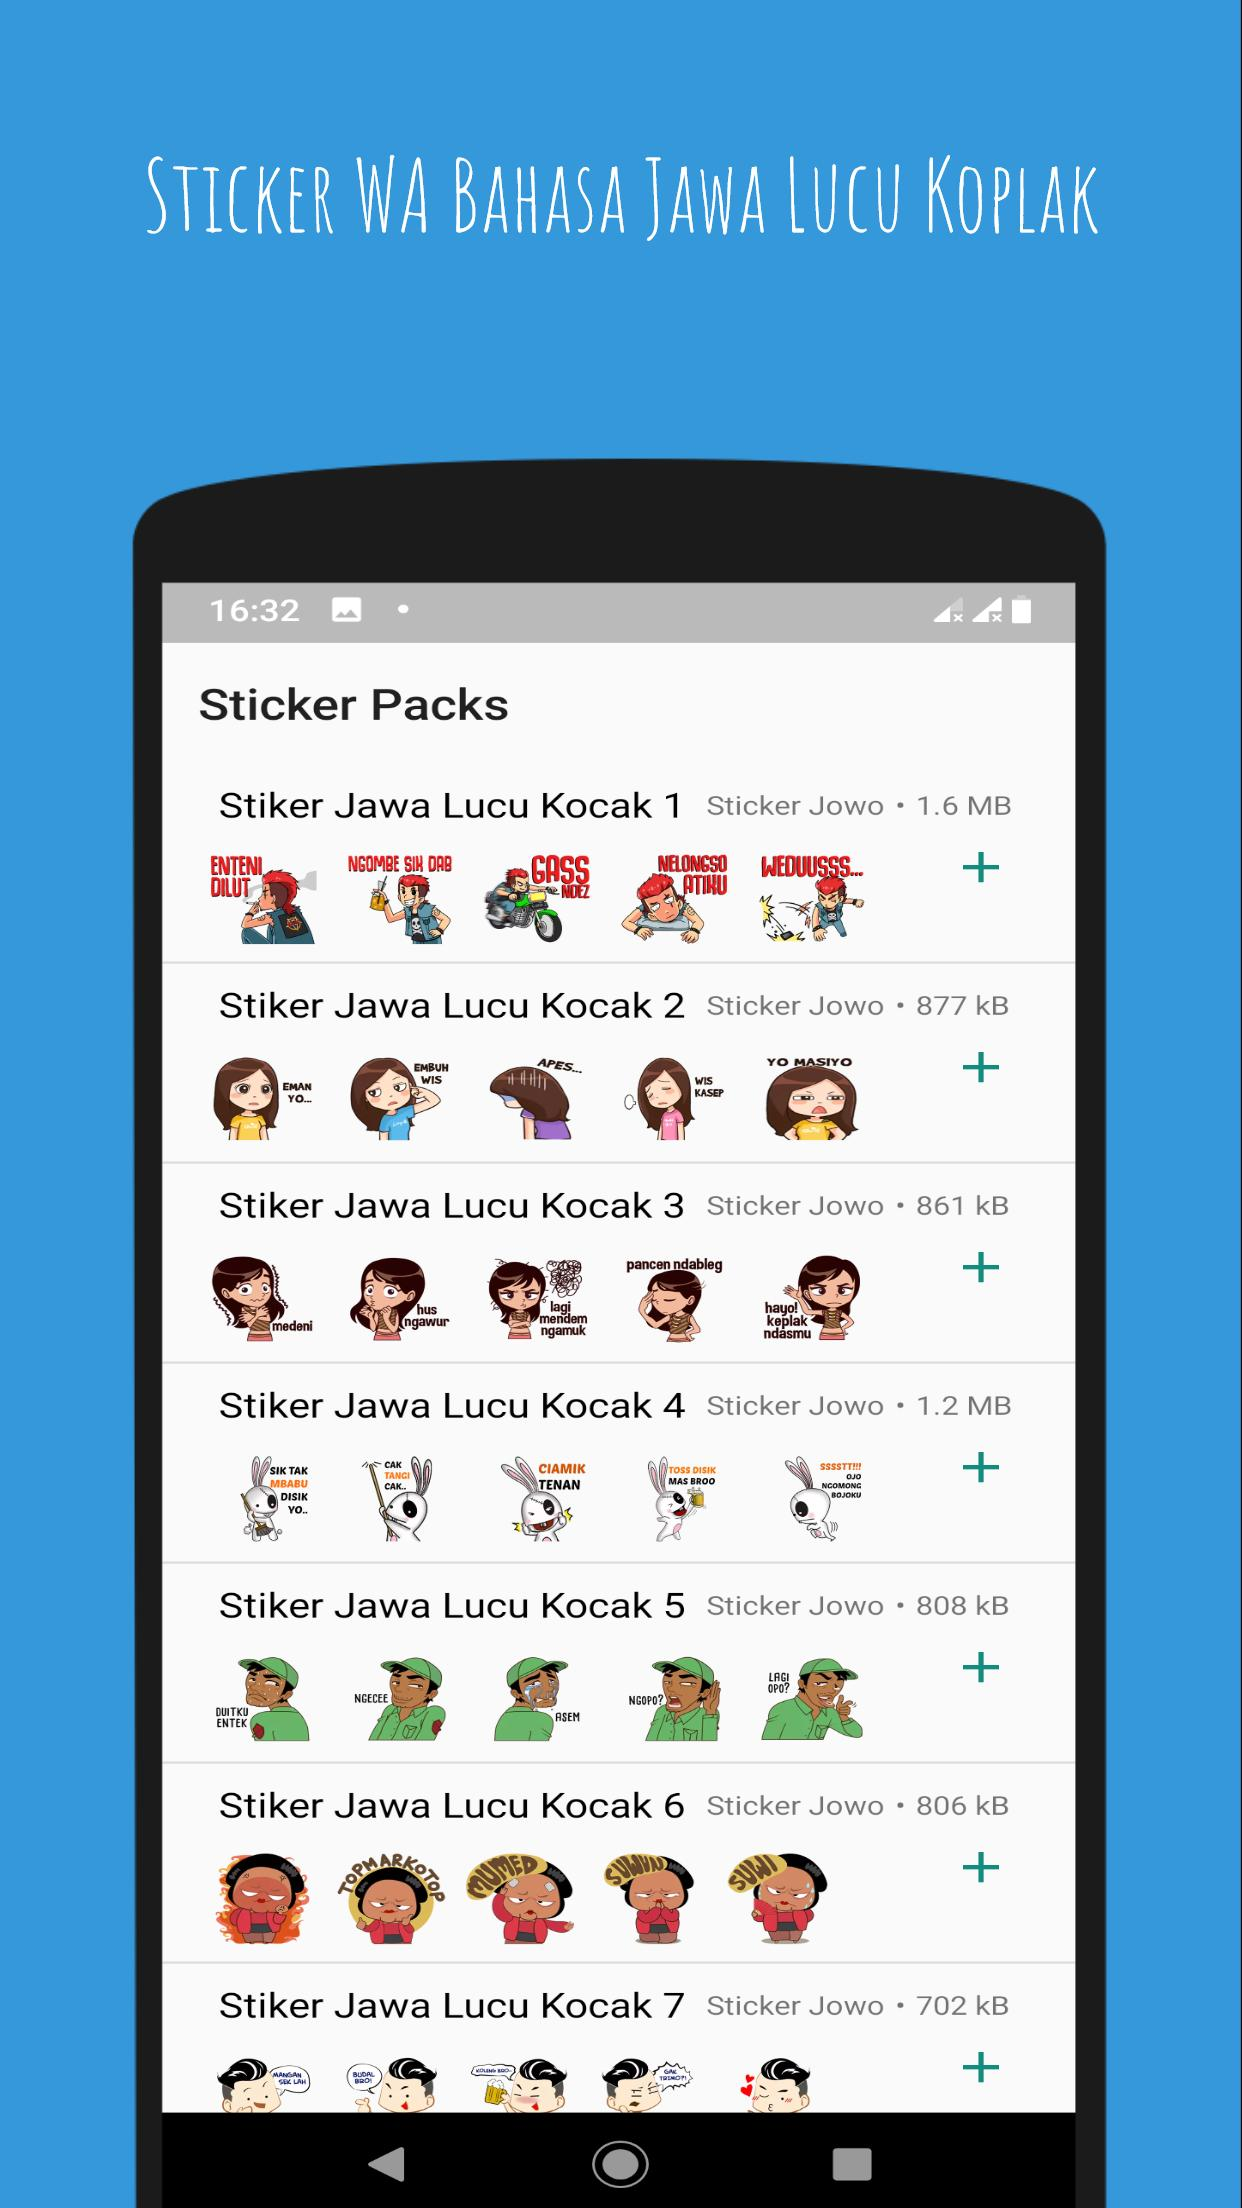 Sticker WA Bahasa Jawa Lucu Koplak For Android APK Download